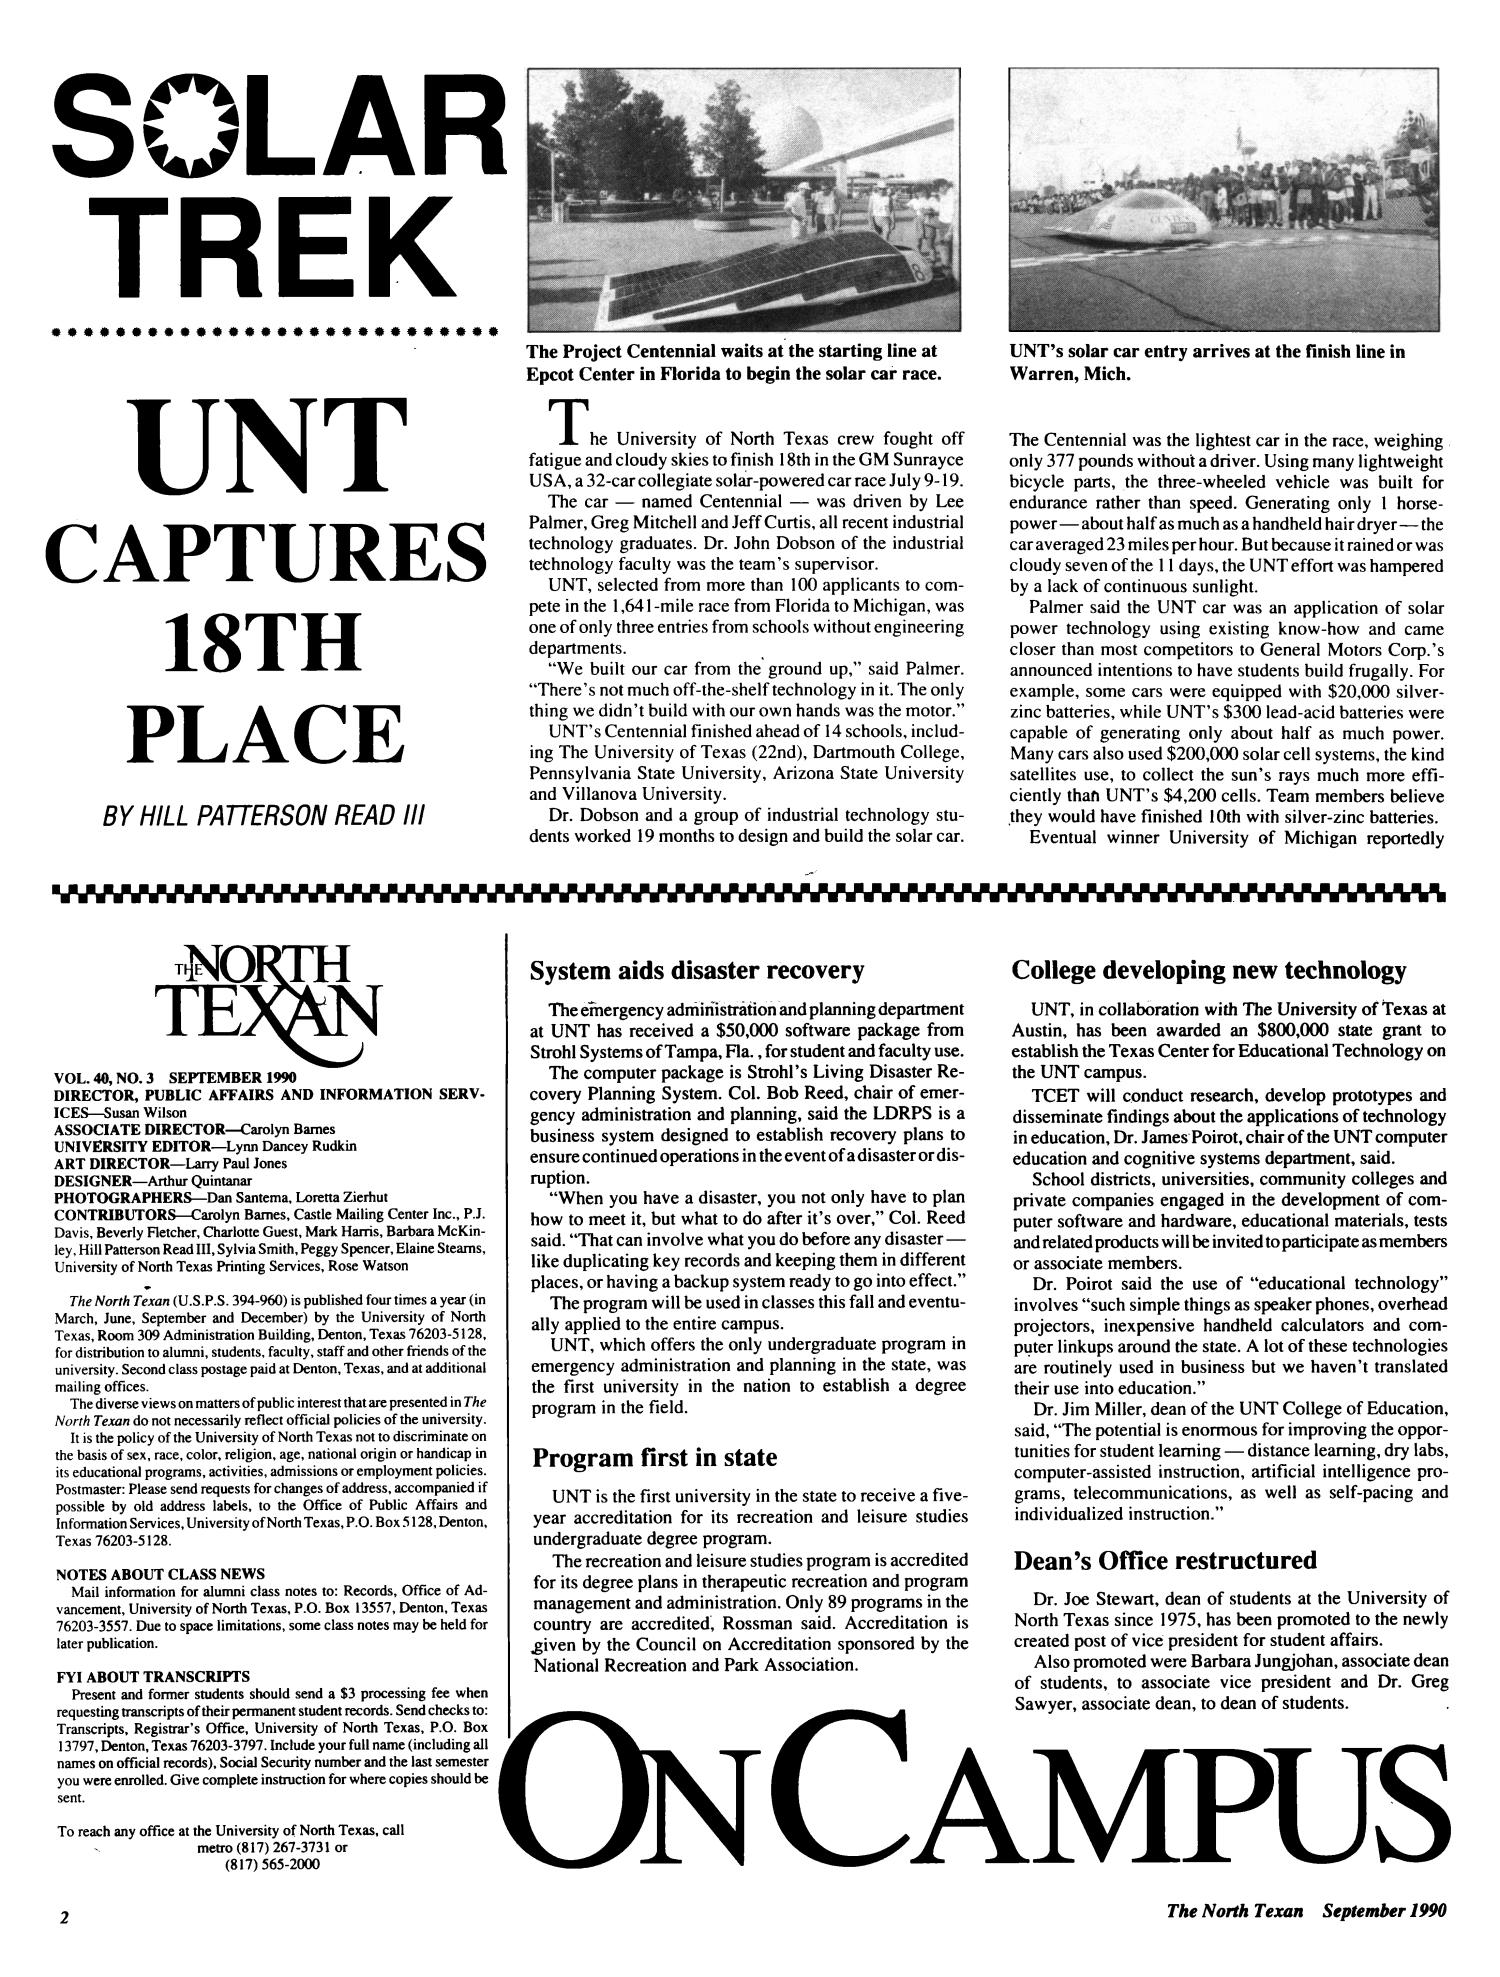 The North Texan, Volume 40, Number 3, September 1990                                                                                                      2